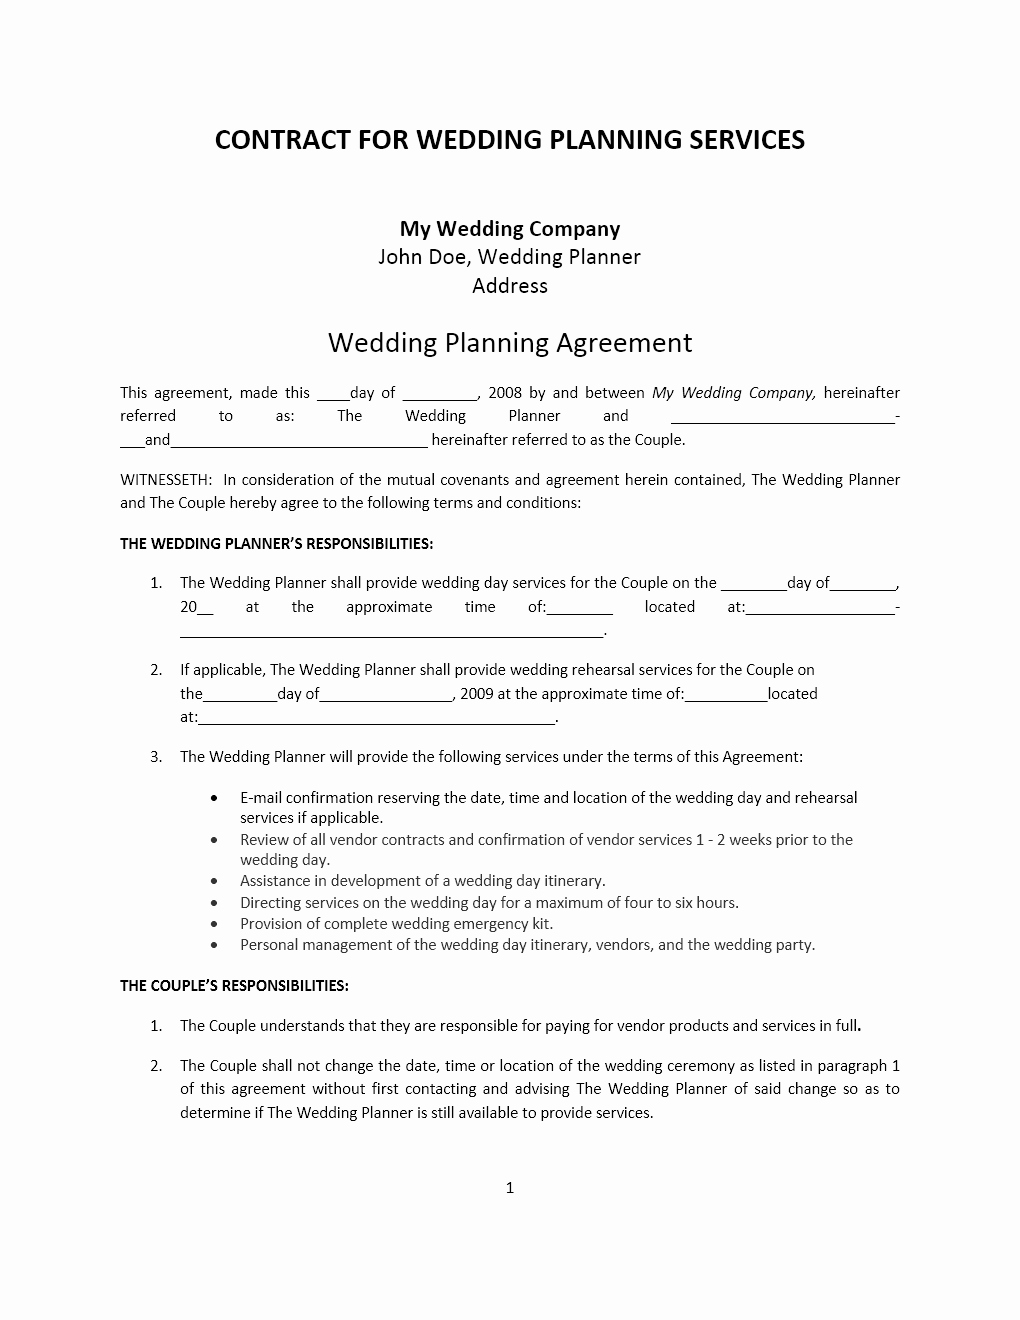 Wedding Planner Template Free New Wedding Planner Contract Template